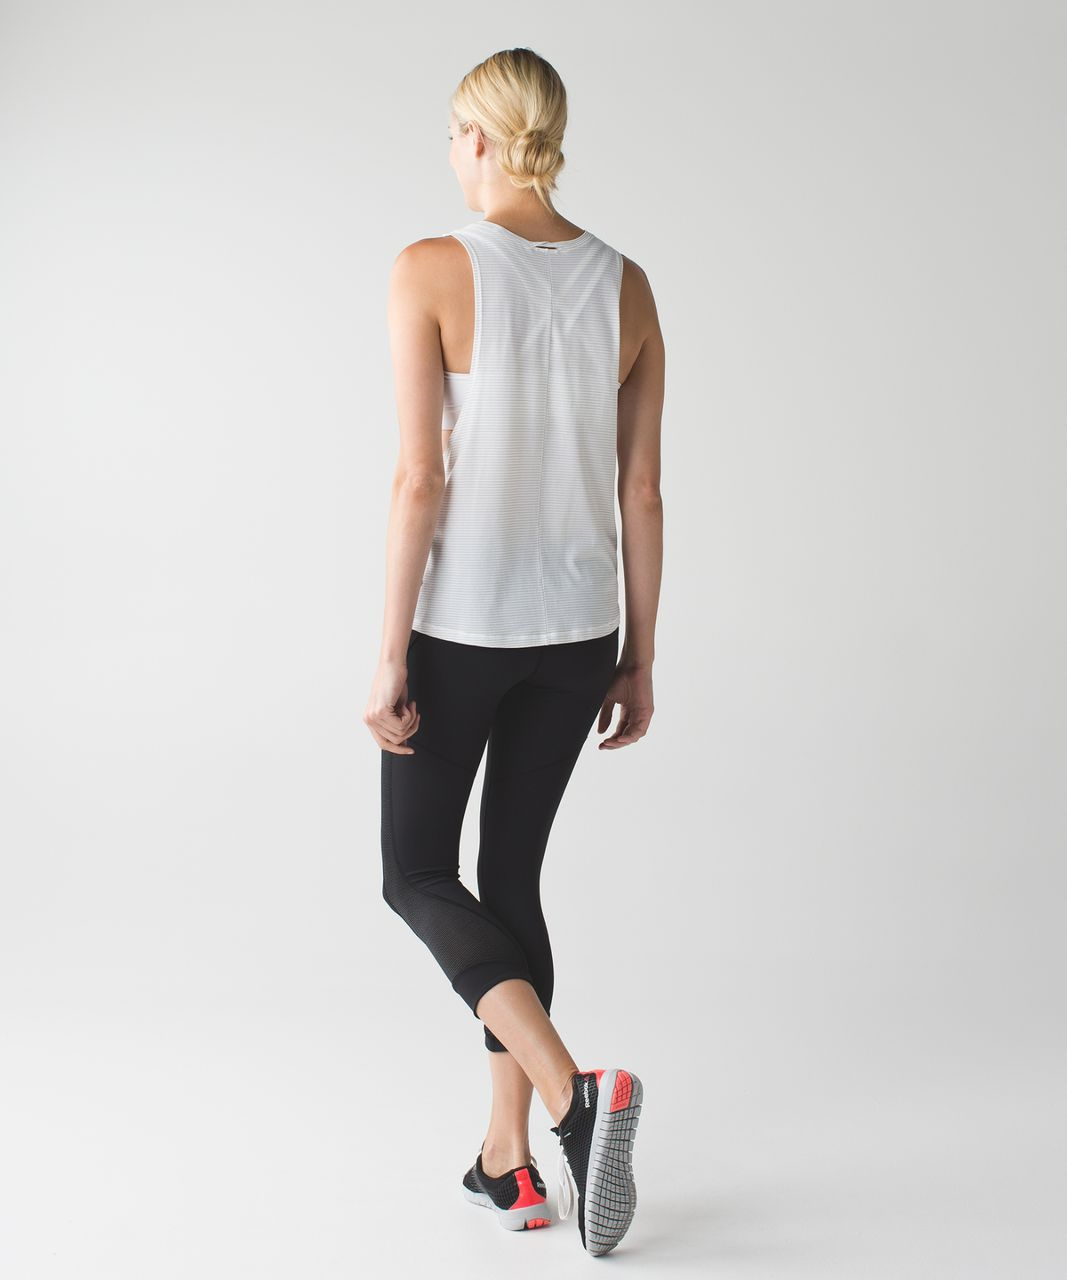 Lululemon Interval Crop - Black